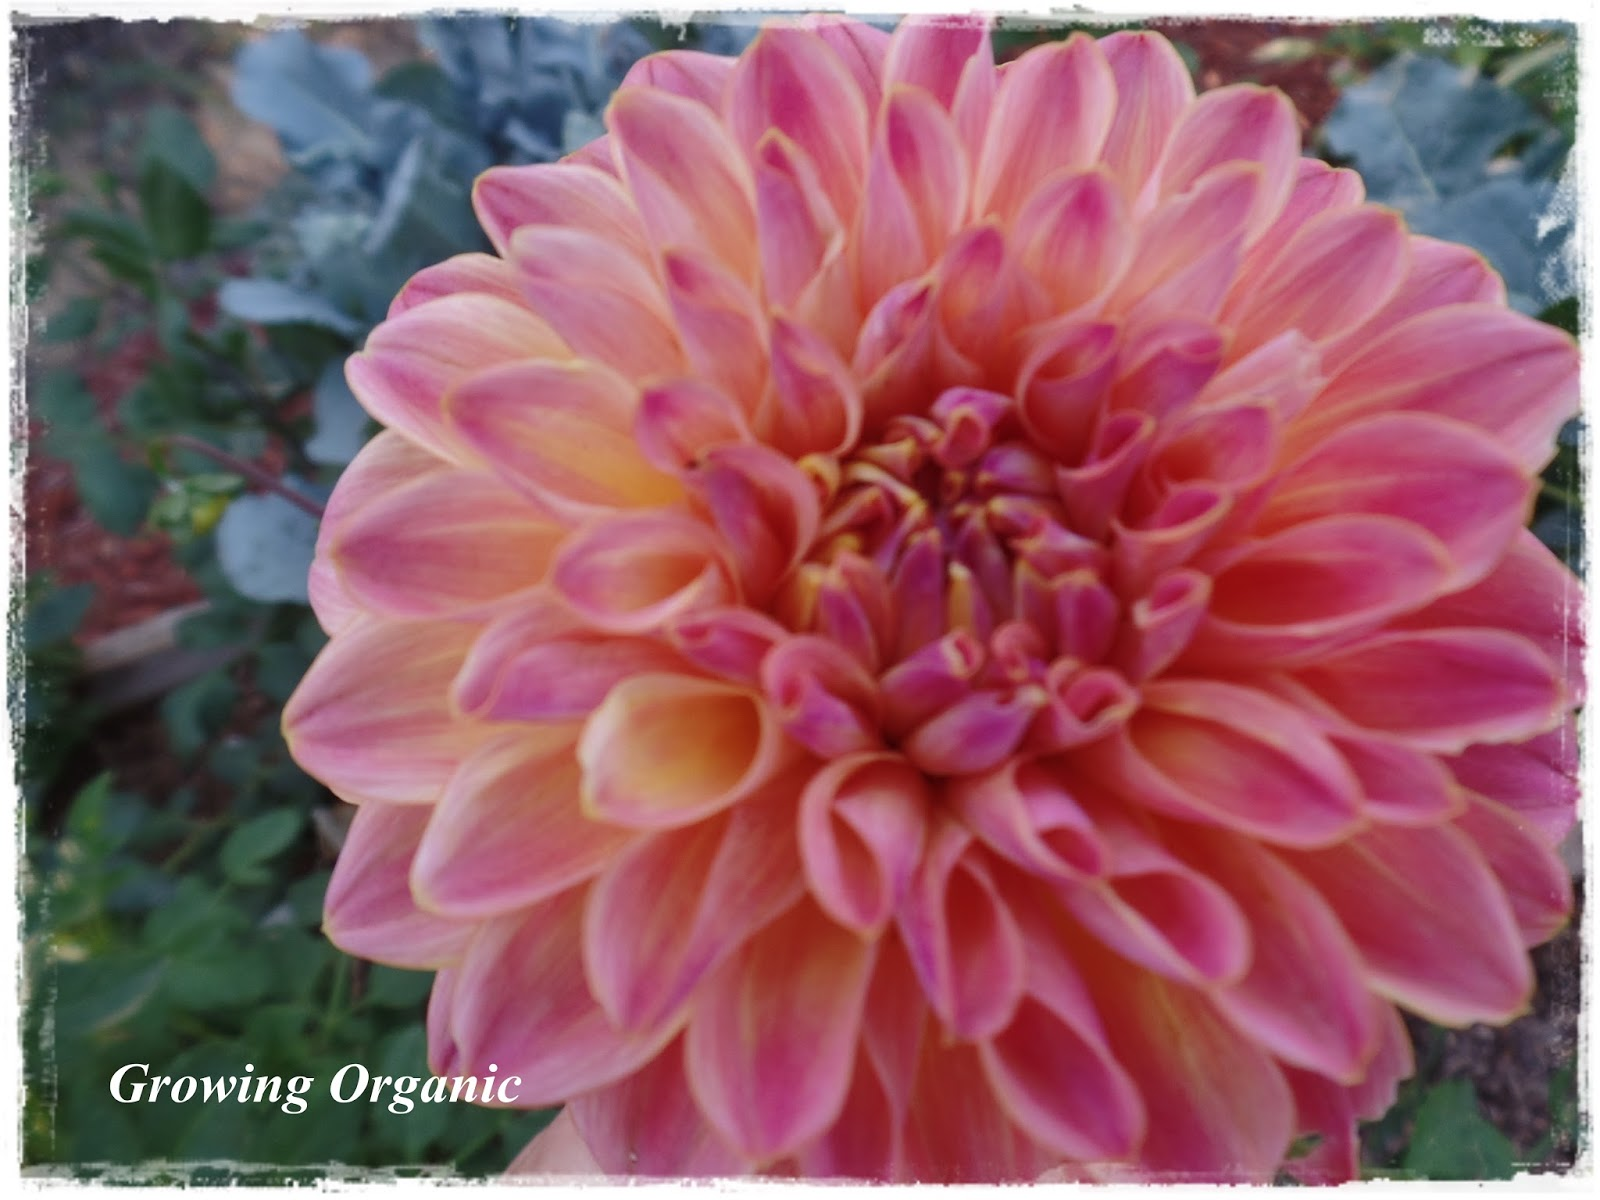 Growing Organic Dahlias